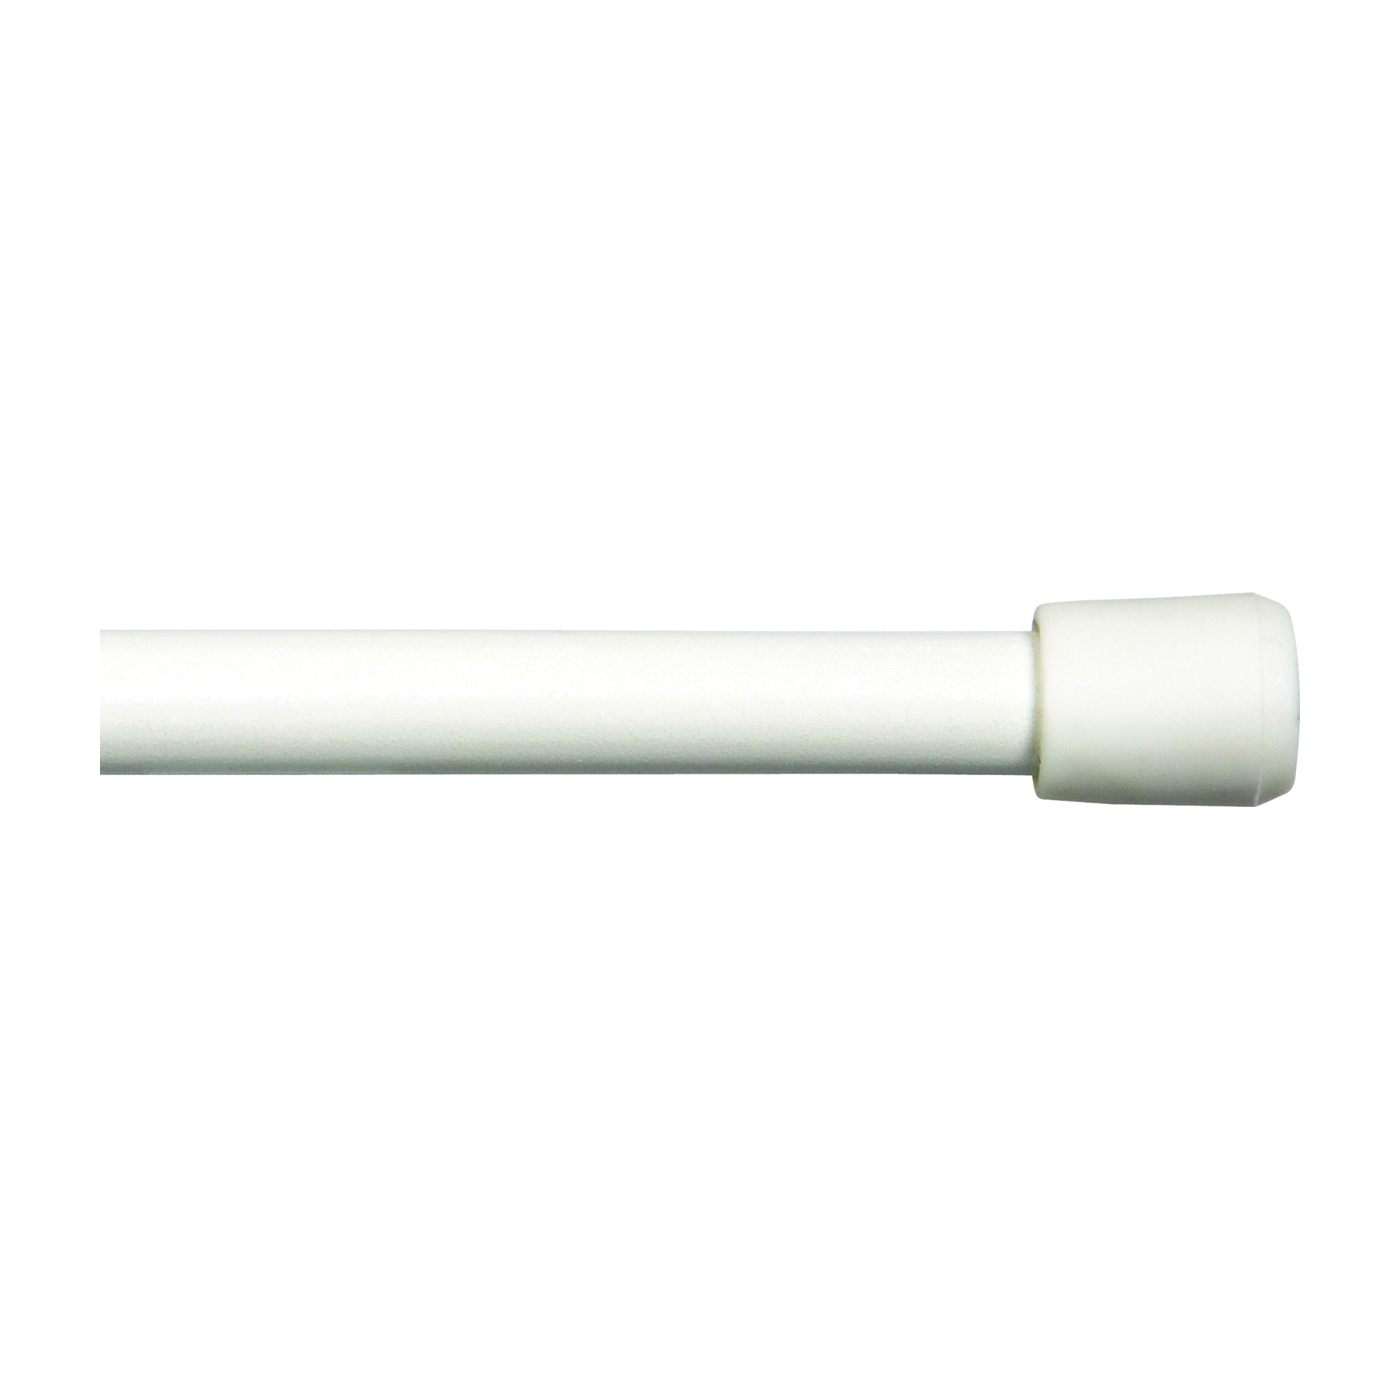 Picture of Kenney KN631/1 Spring Tension Rod, 7/16 in Dia, 28 to 48 in L, Metal, White